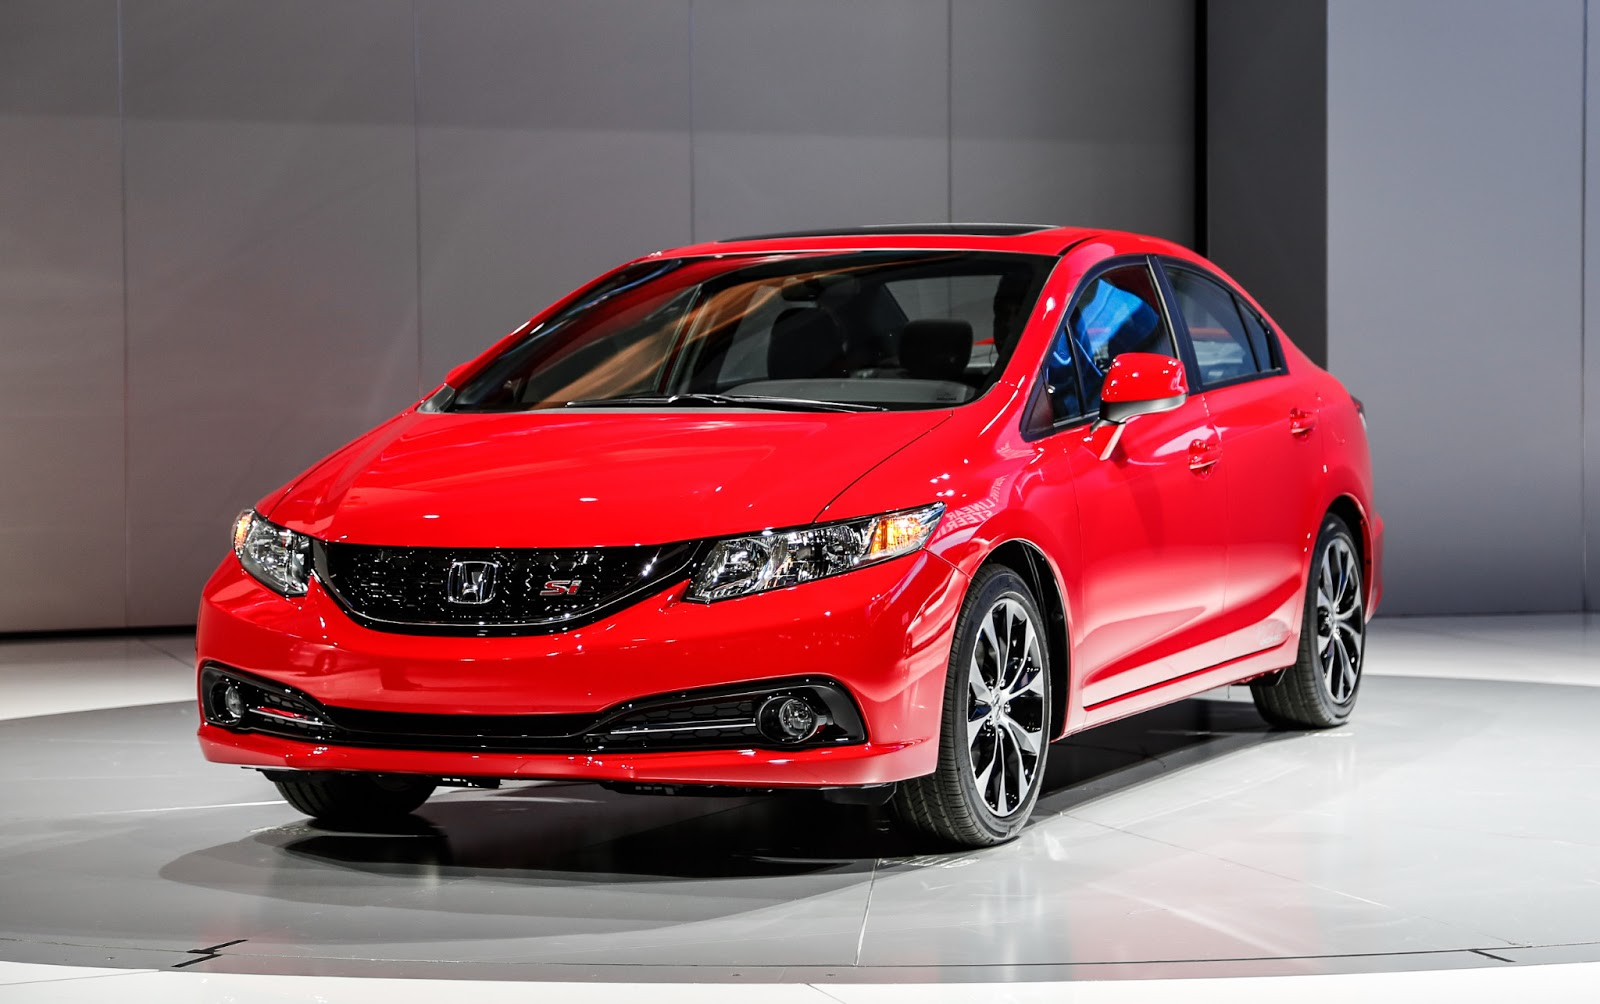 2019 Honda Civic Si Sedan photo - 1